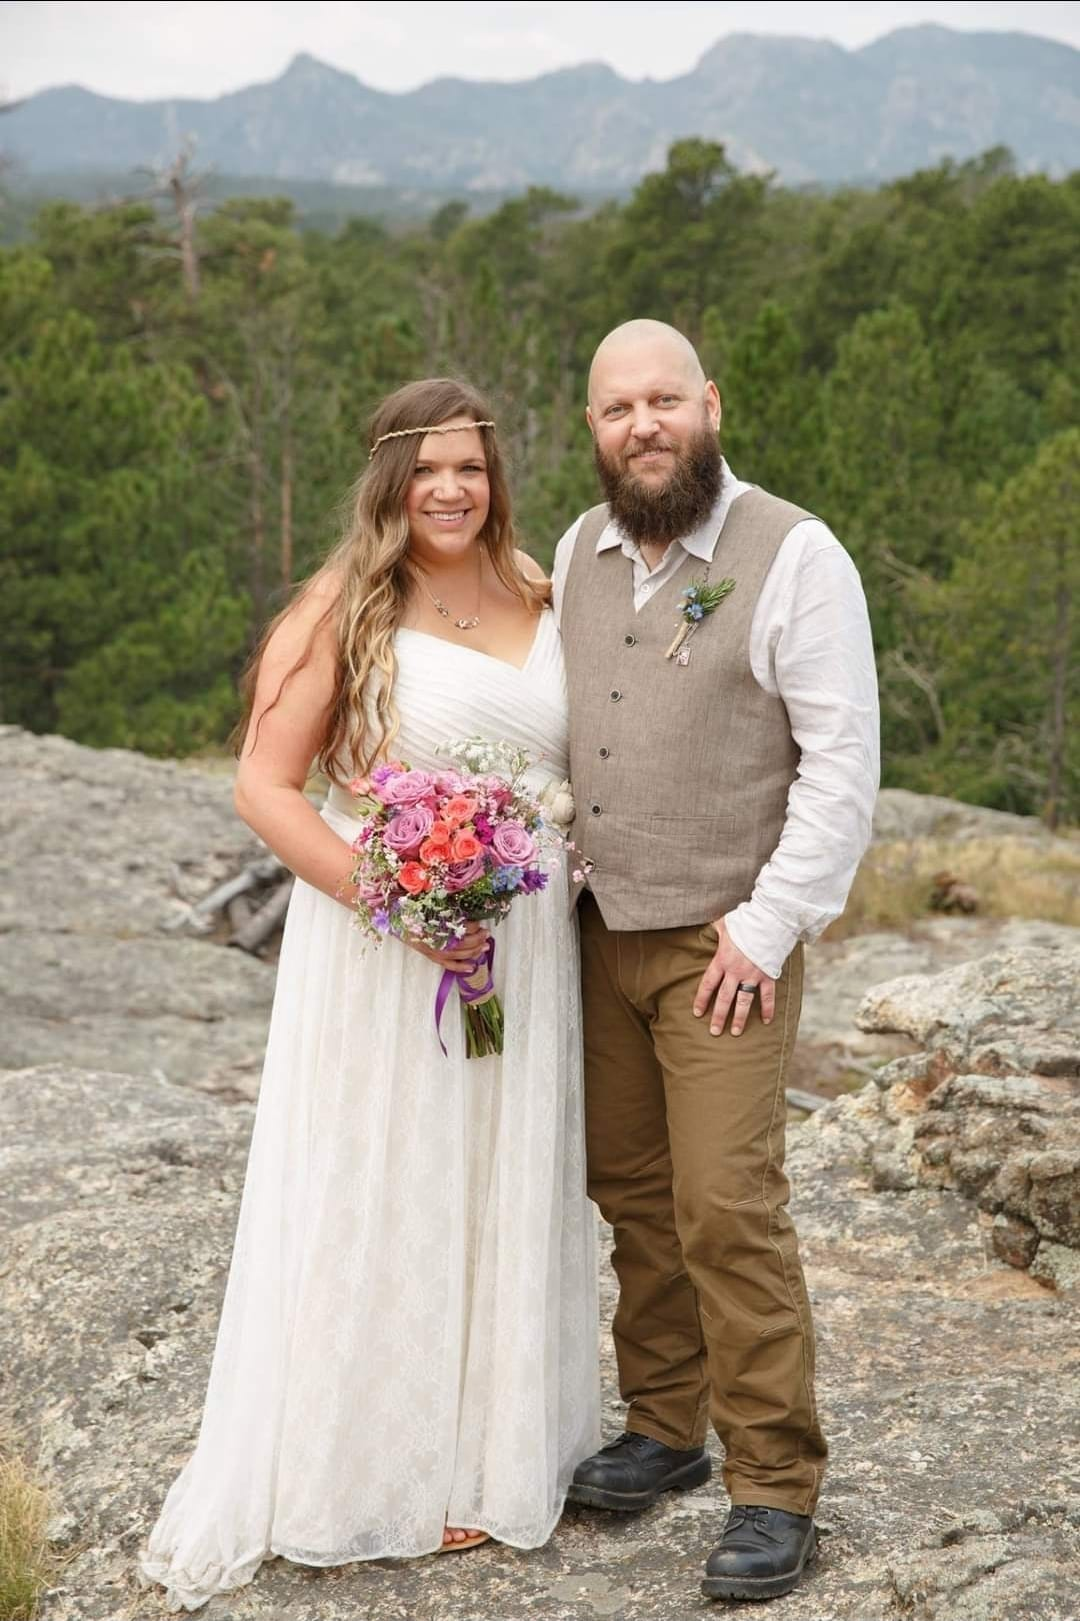 Kelsey Blake met her husband at the Sturgis rally in 2010. They have been married for three and half years.